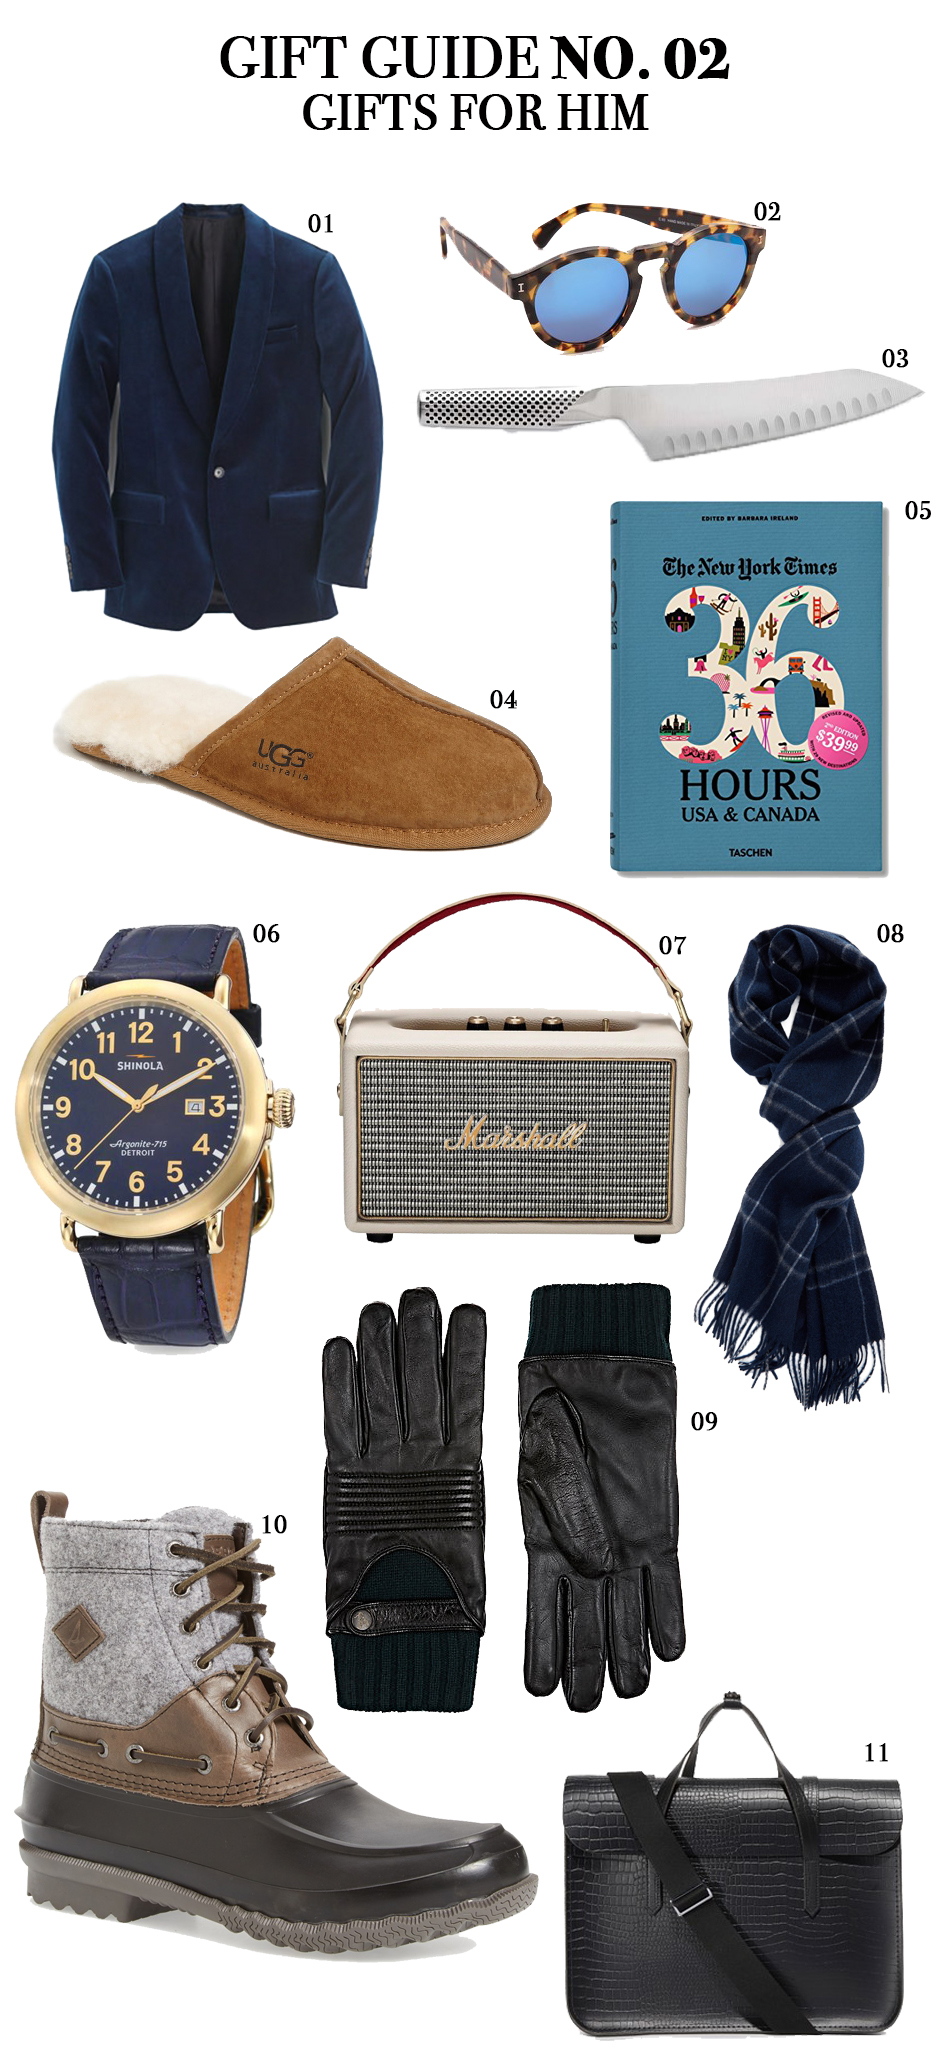 gift-guide-no-02-gifts-for-him